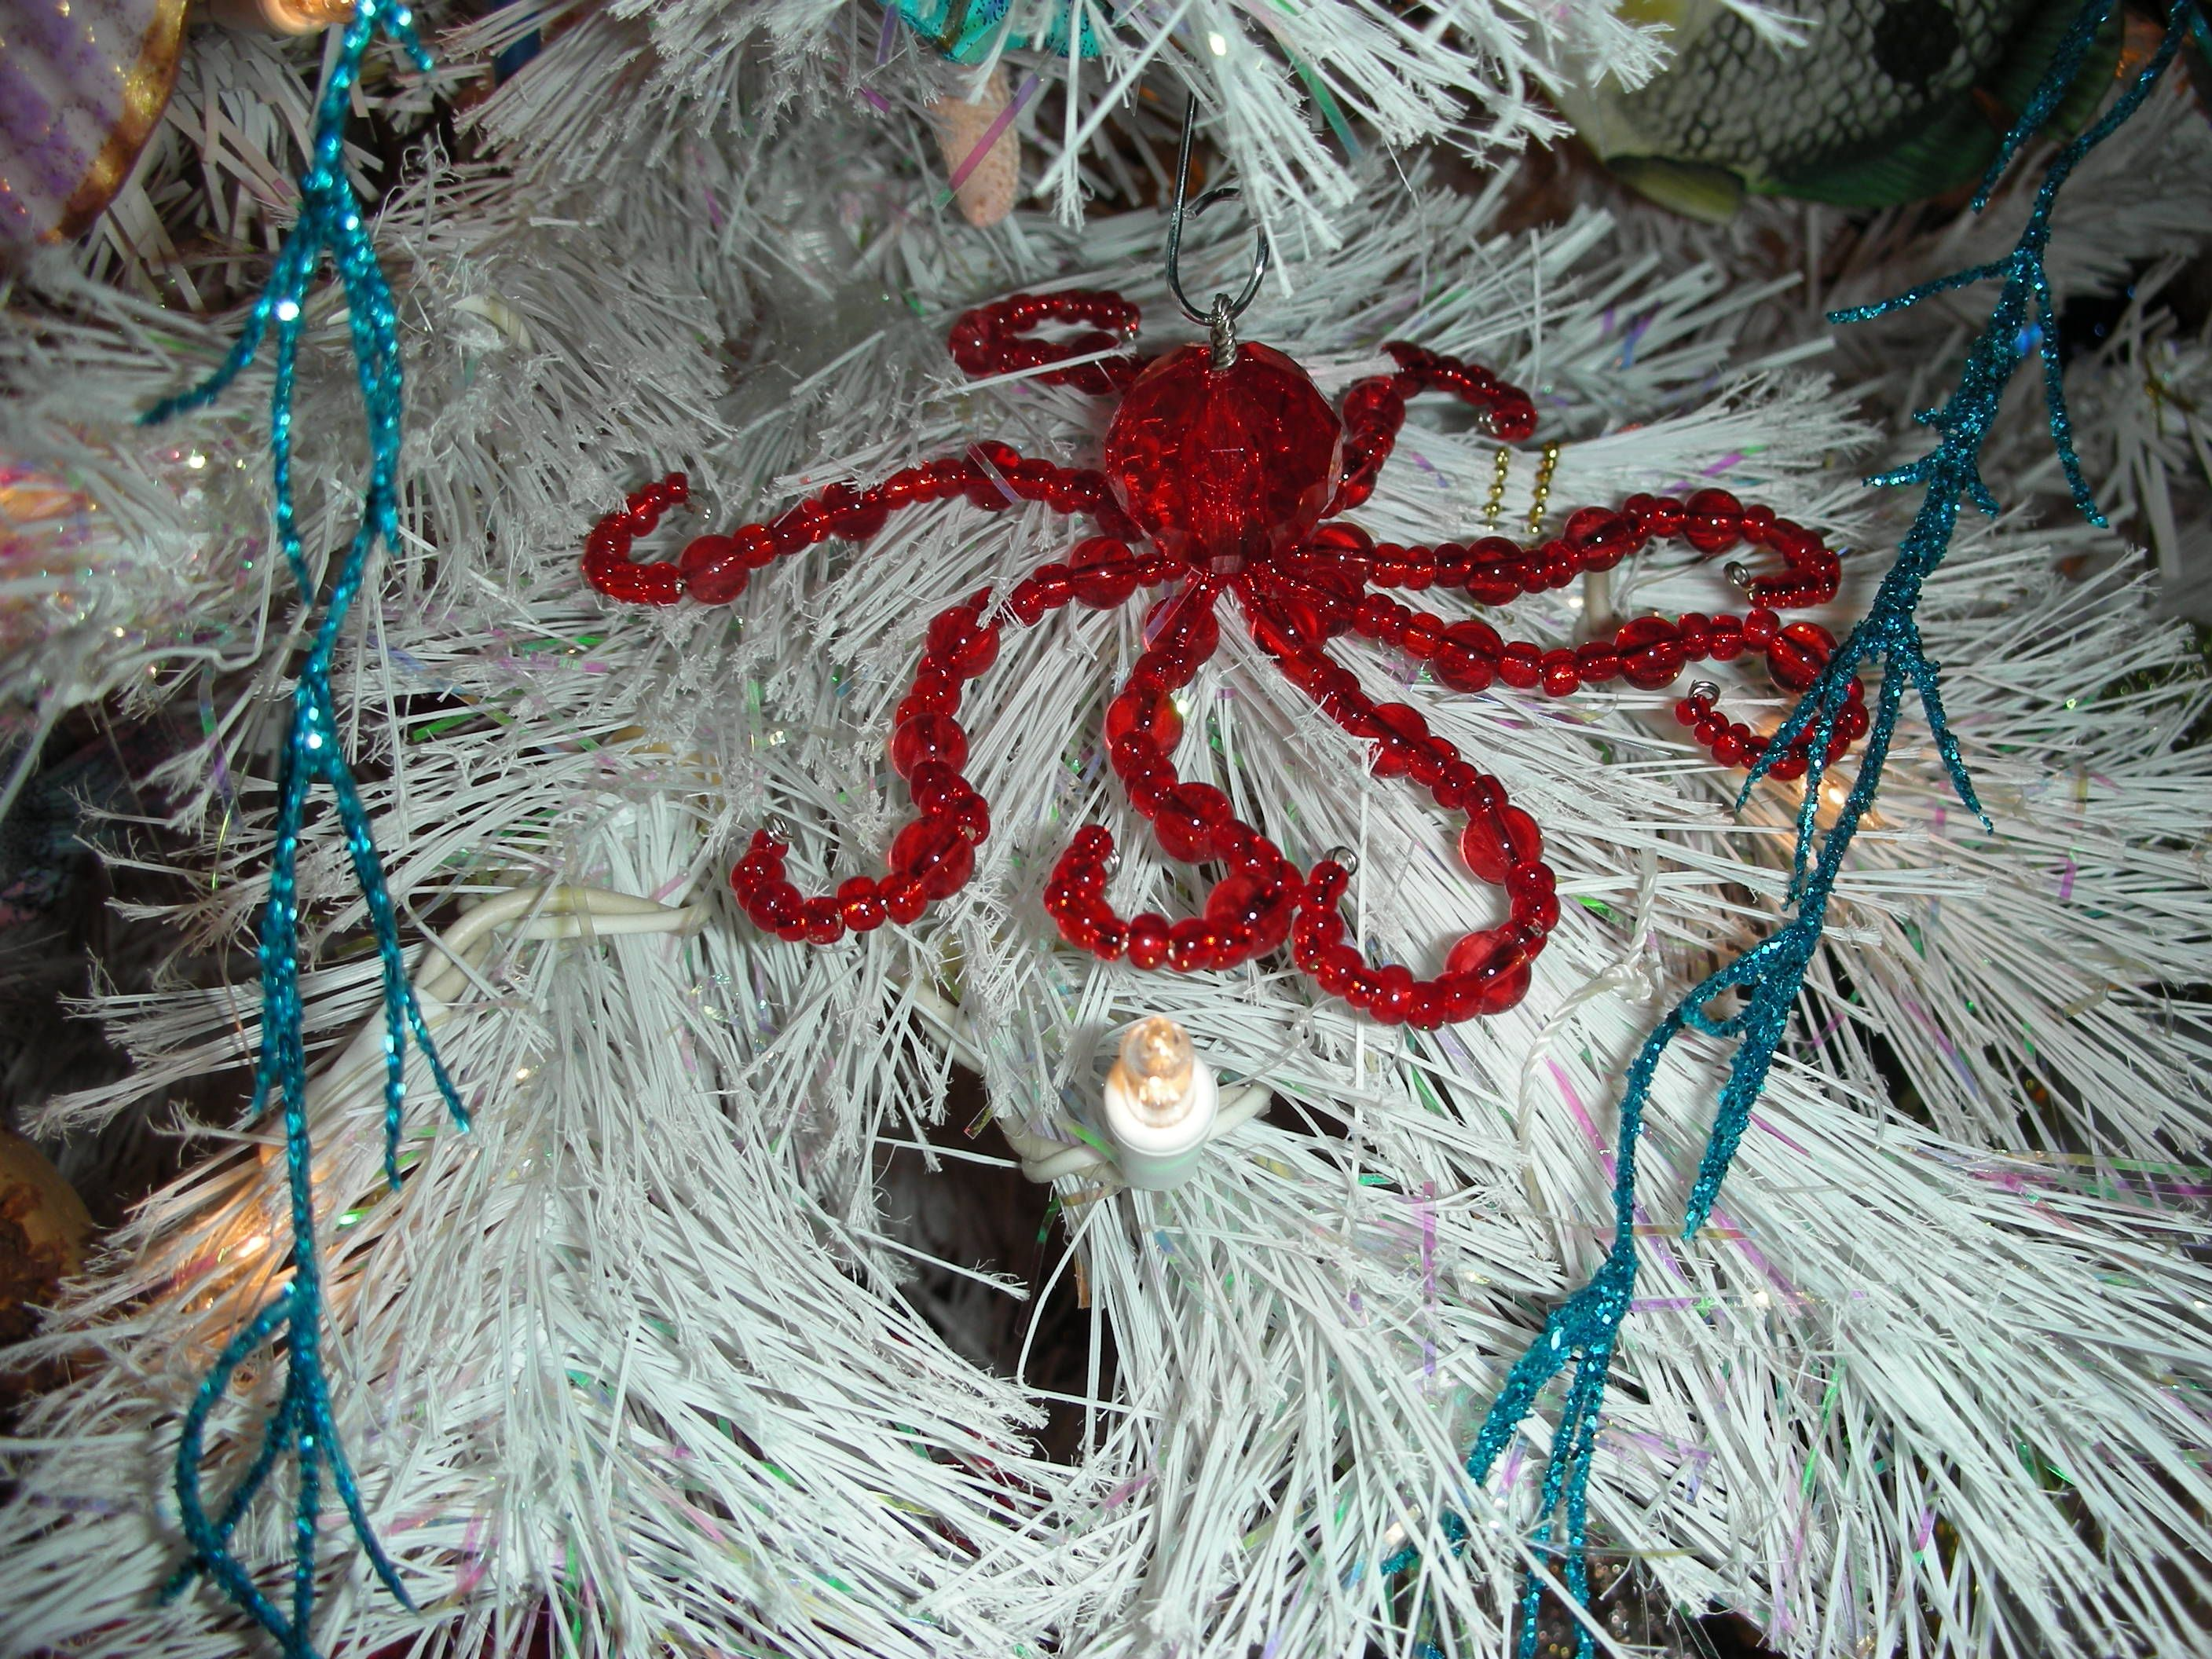 Red Octopus Ornament | Beach Crafts | Pinterest | Ornament, Beaded ...